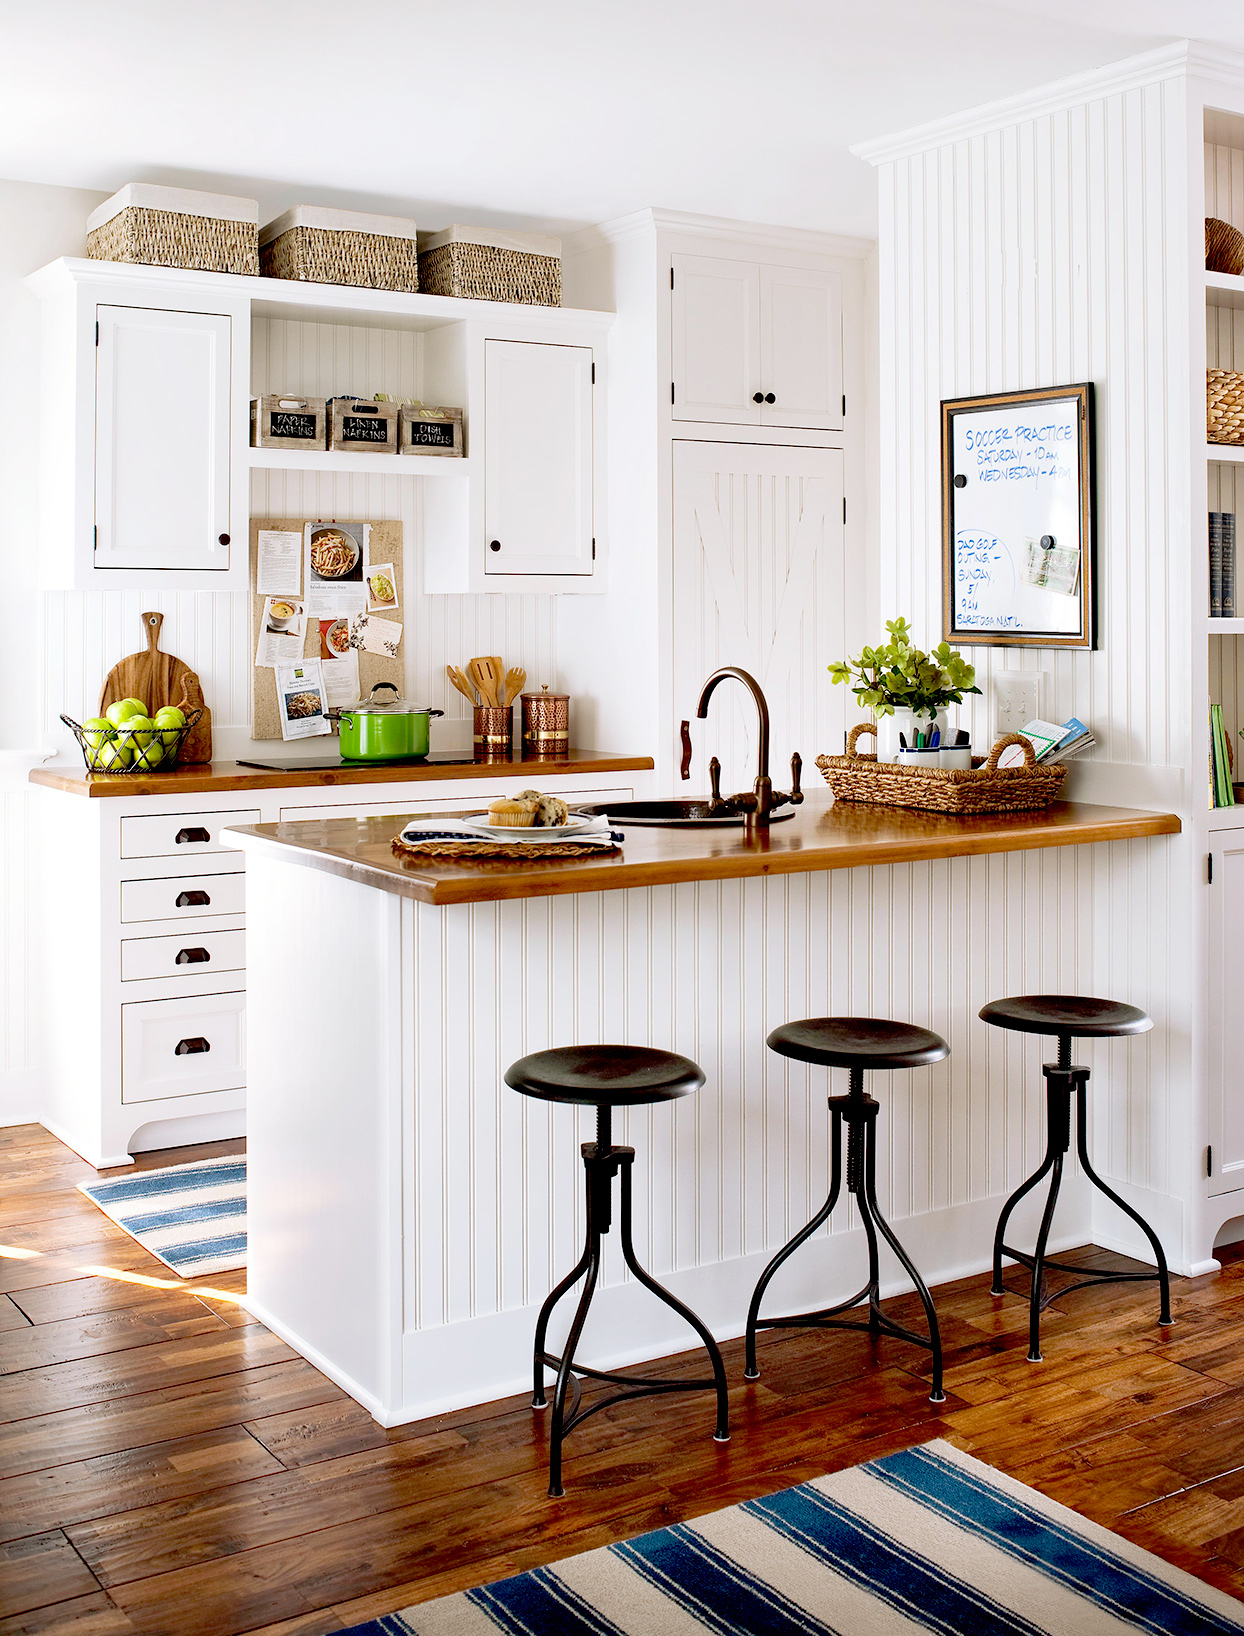 White kitchen with bar seating and stools